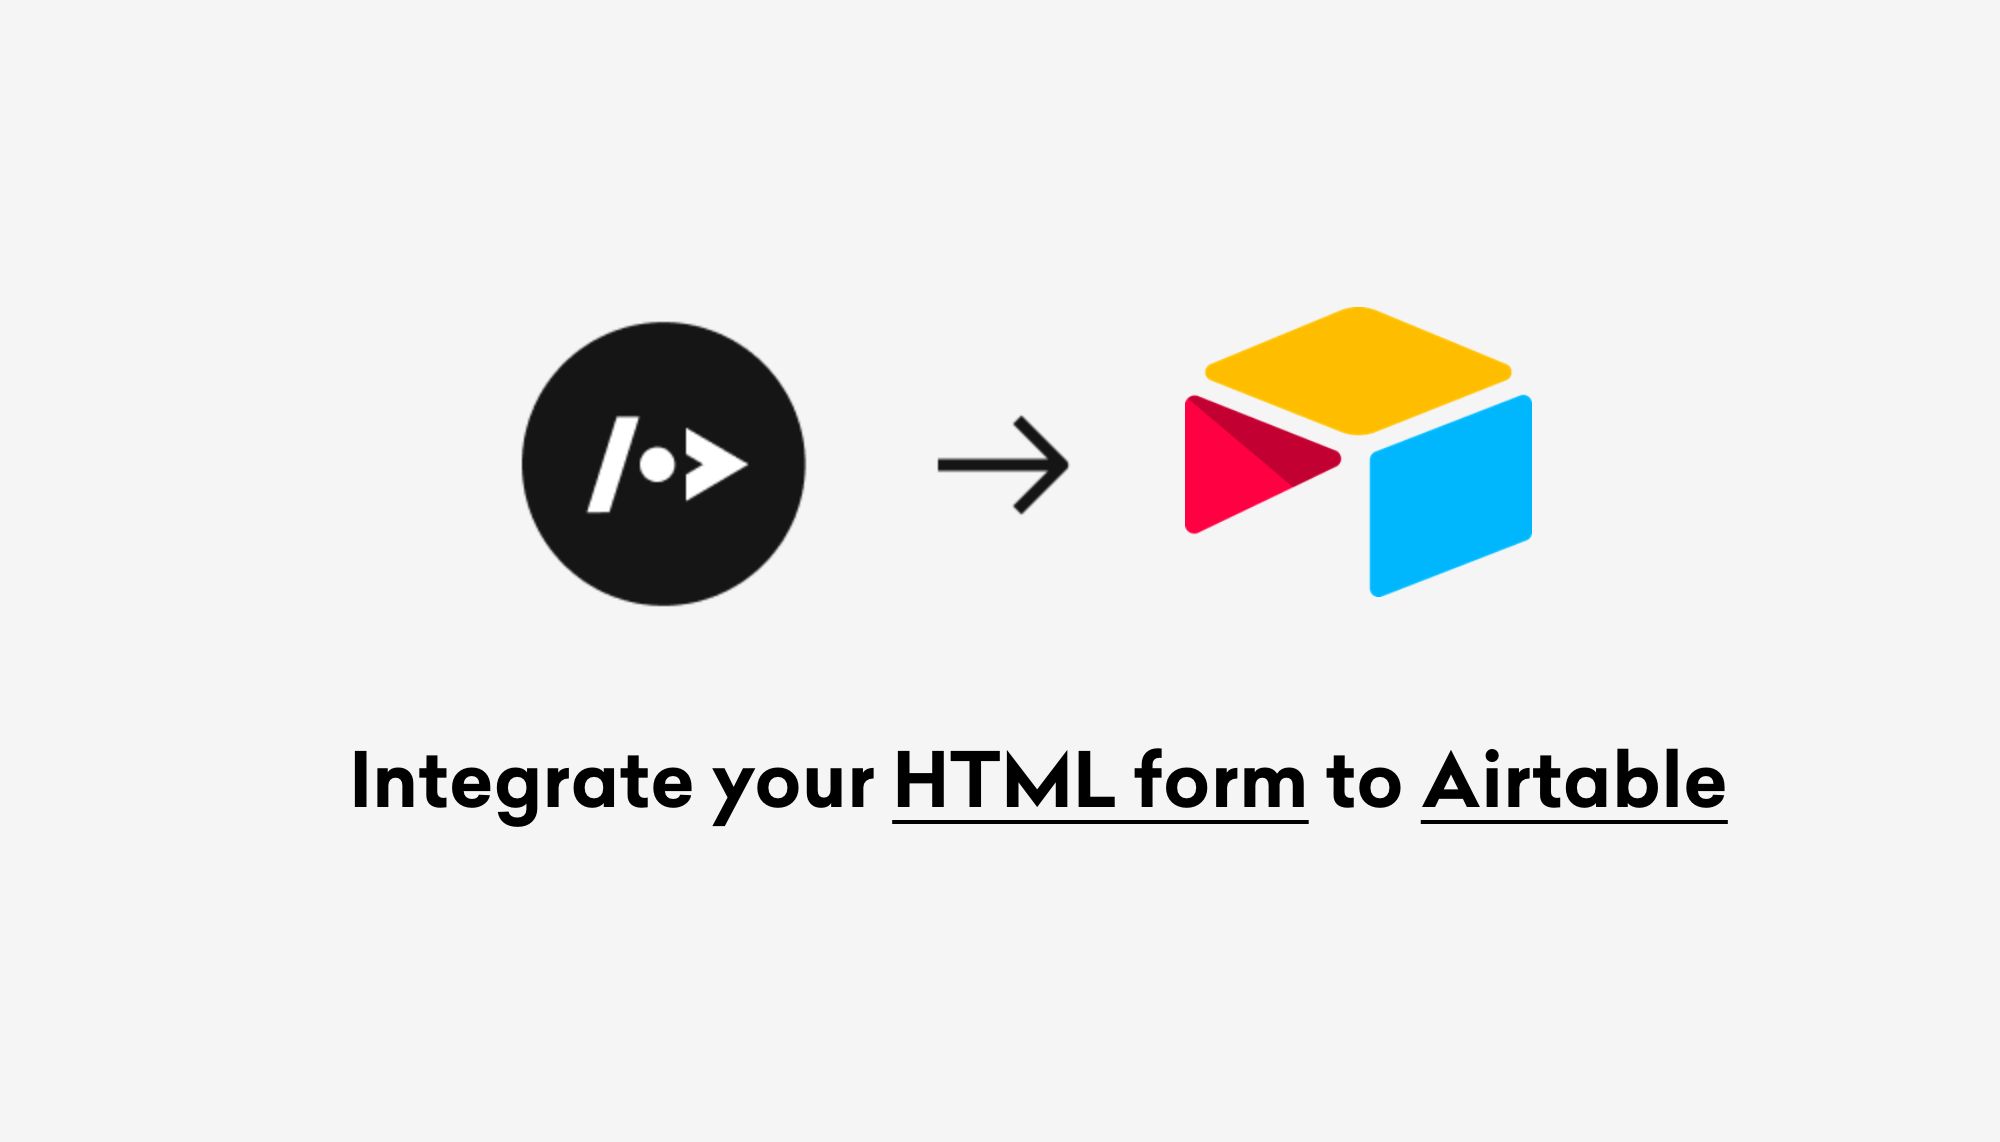 How to integrate your HTML form to Airtable